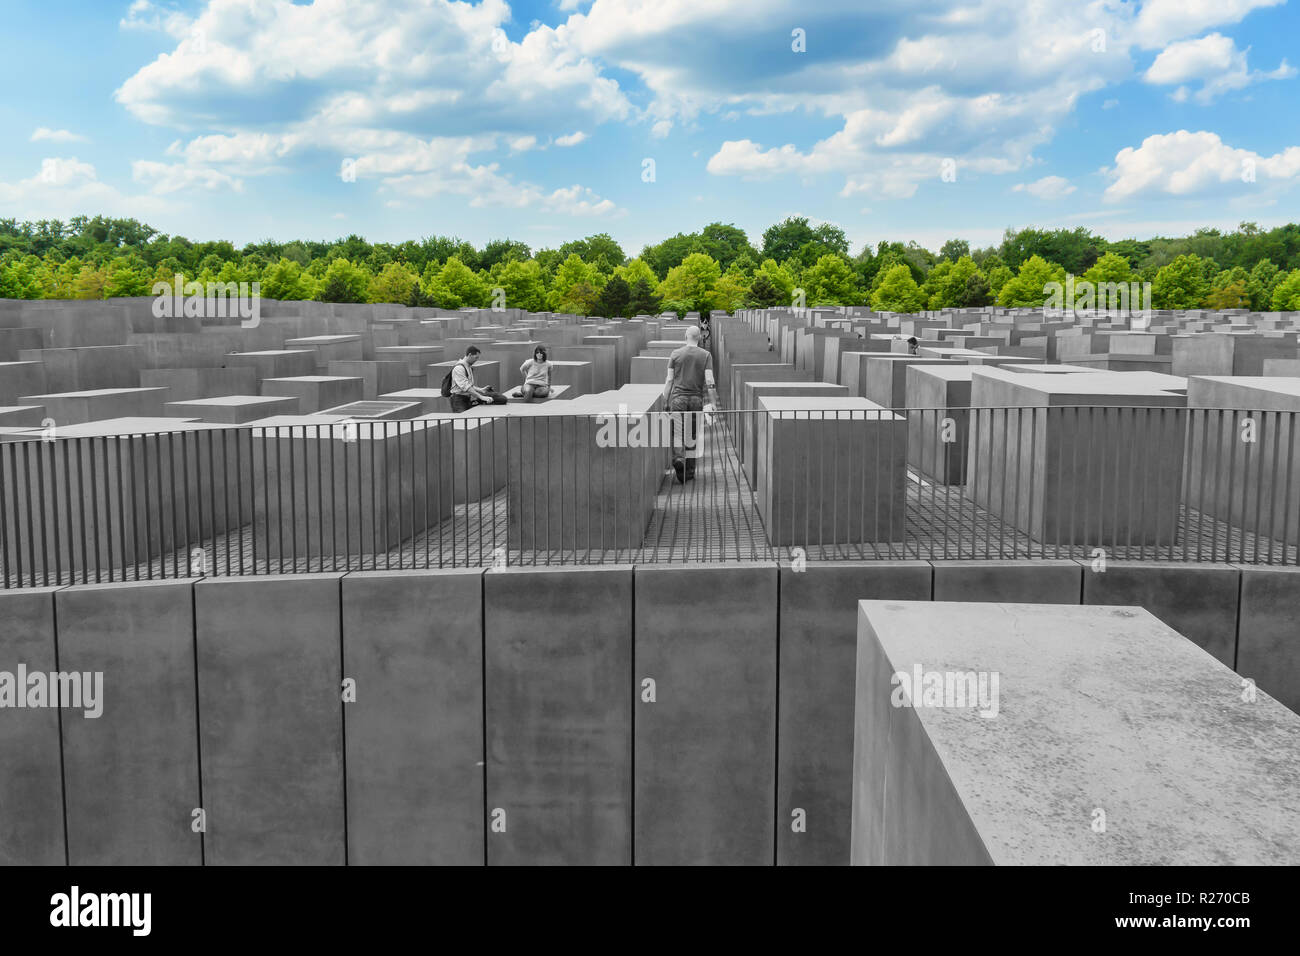 "Berlin, Germany, May 25, 2015: monument to victims of the Holocaust. The idea belongs to the Berlin publicist Lea Rosh, who organized the 1989 Fund ""M Stock Photo"